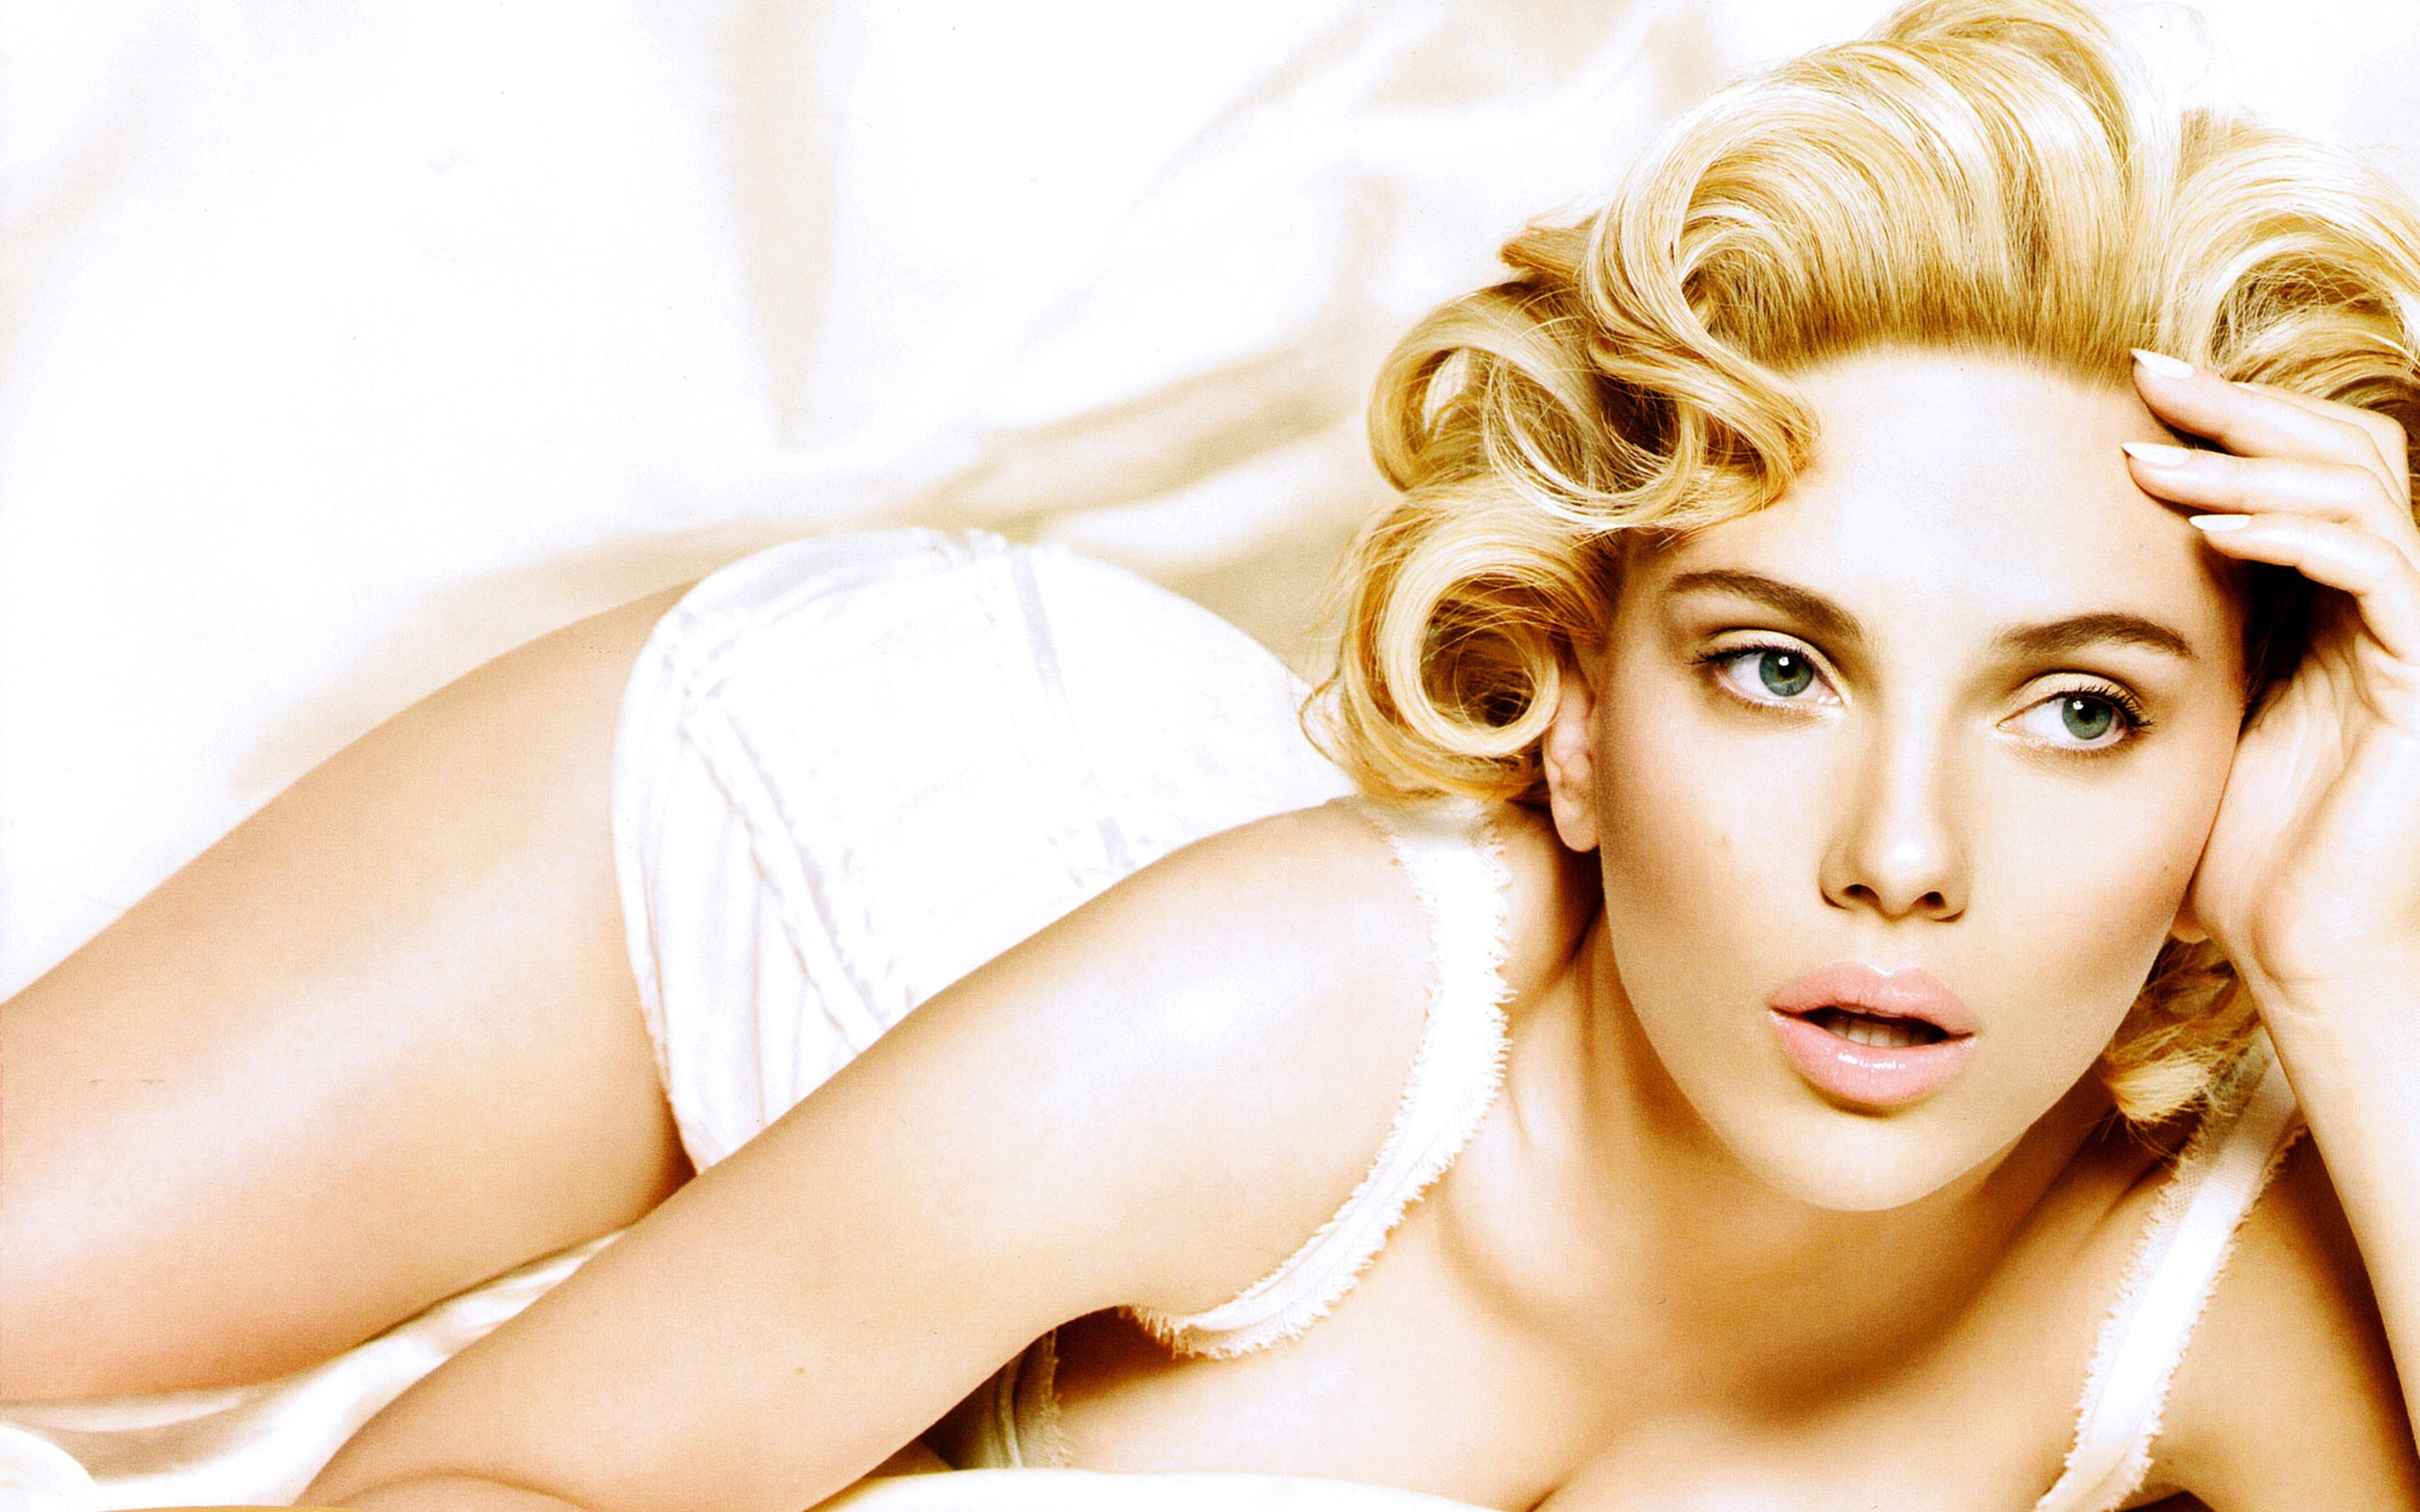 Scarlett Johansson Monro look - Scarlett Johansson Net Worth, Awards, Movies and Private Life, Pictures and Wallpapers